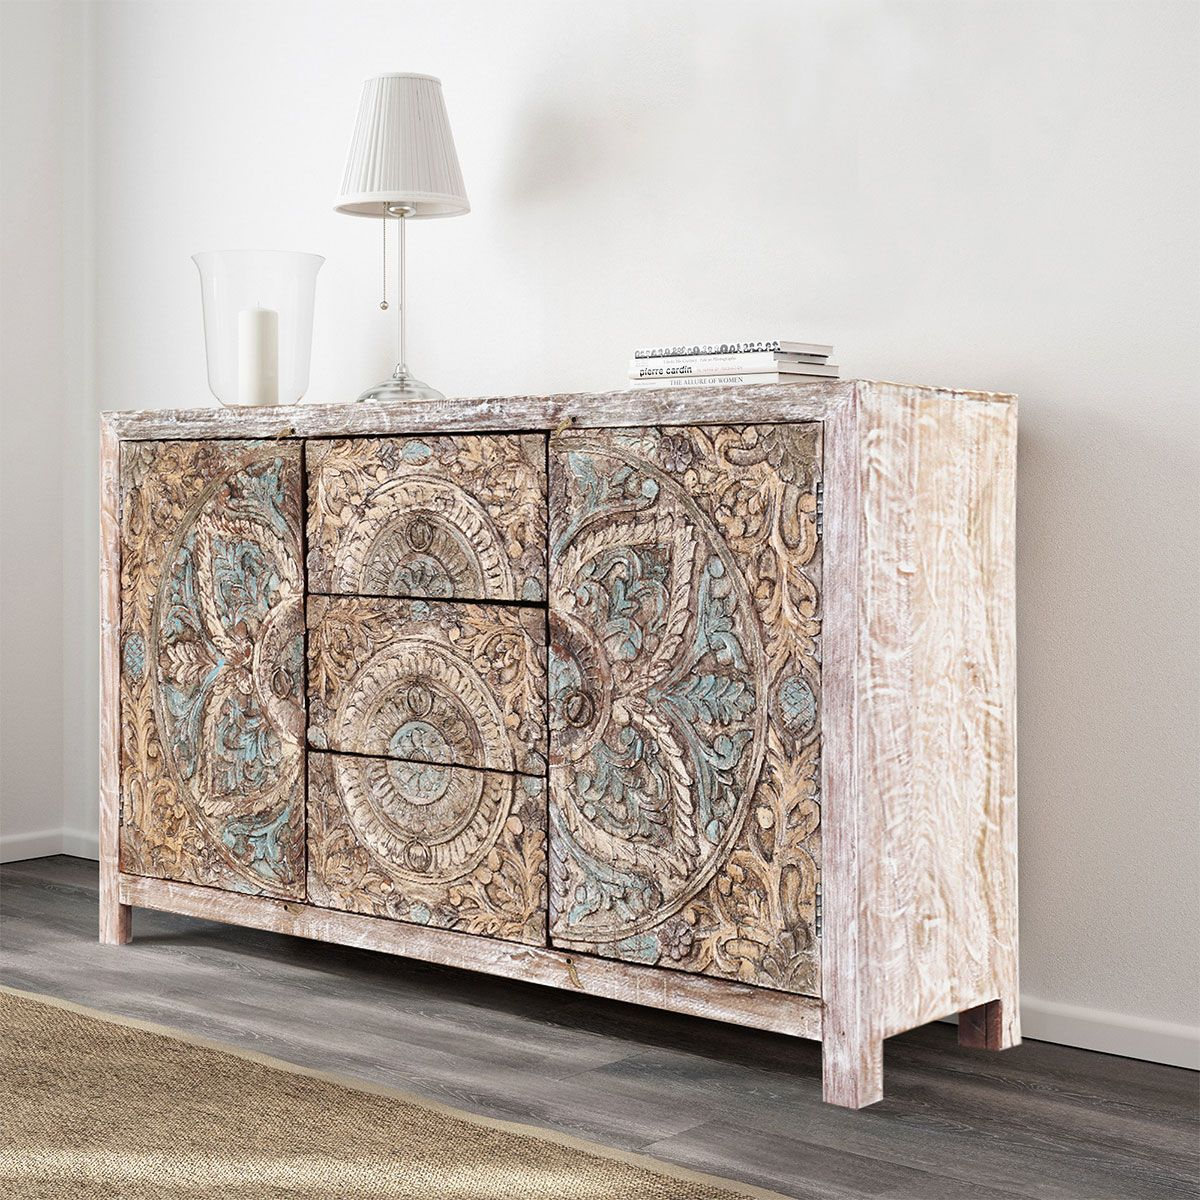 Avenal Floral Mandalas Solid Wood Hand Carved Accent Buffet Cabinet Wohnzimmermobel Weiss Bunte Mobel Holzmobel Lackieren